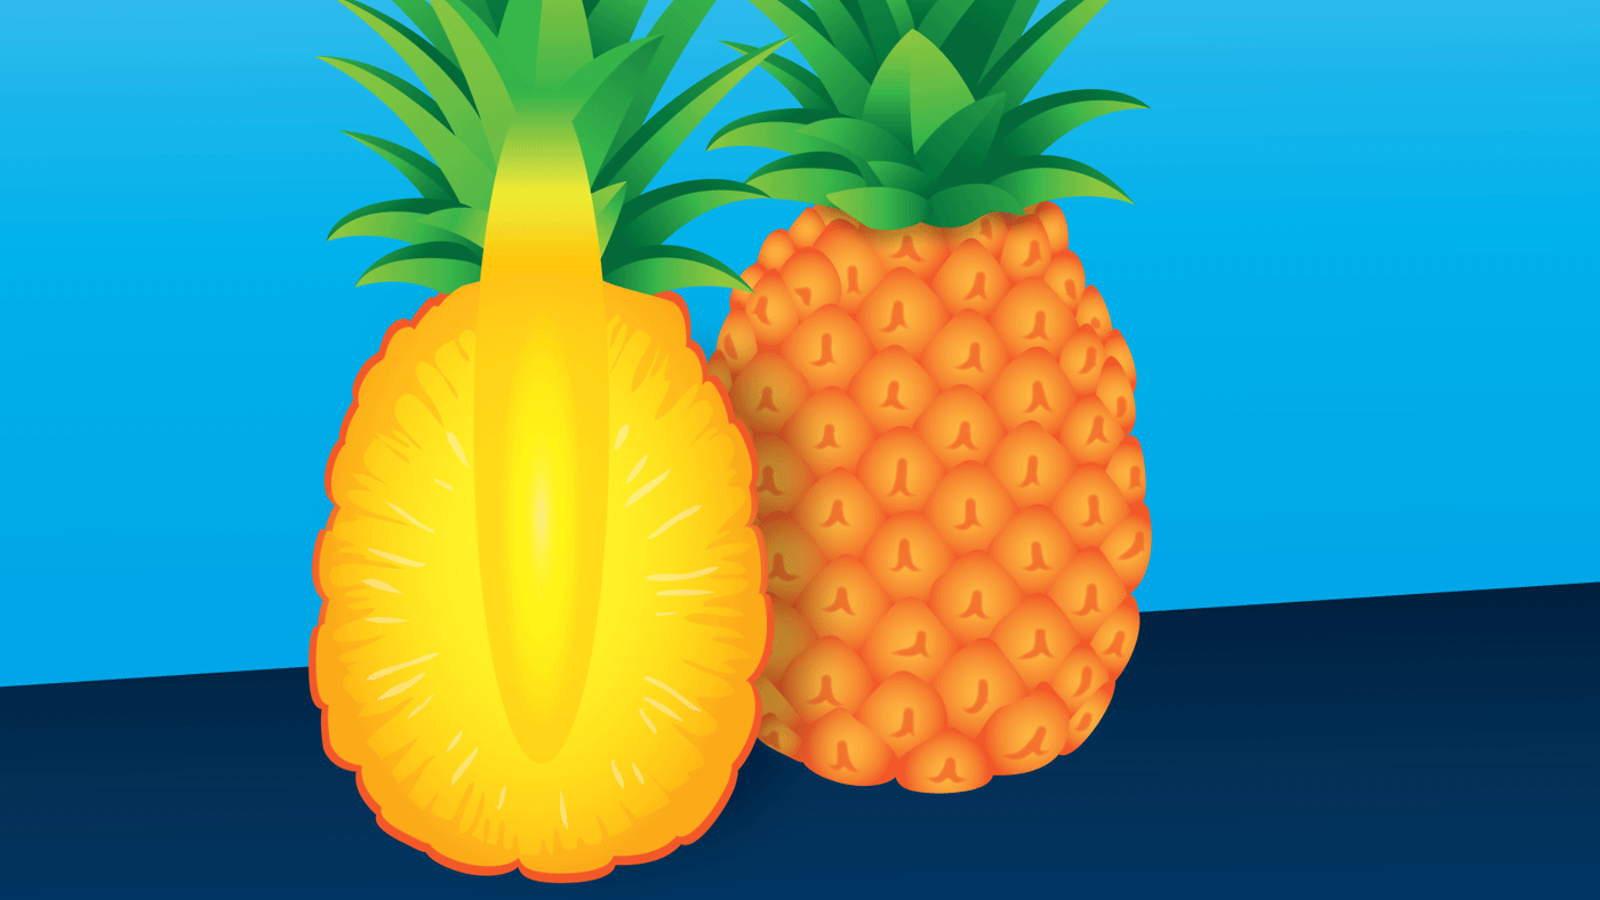 Illustration of pineapple (right) pineapple cut in half (left)